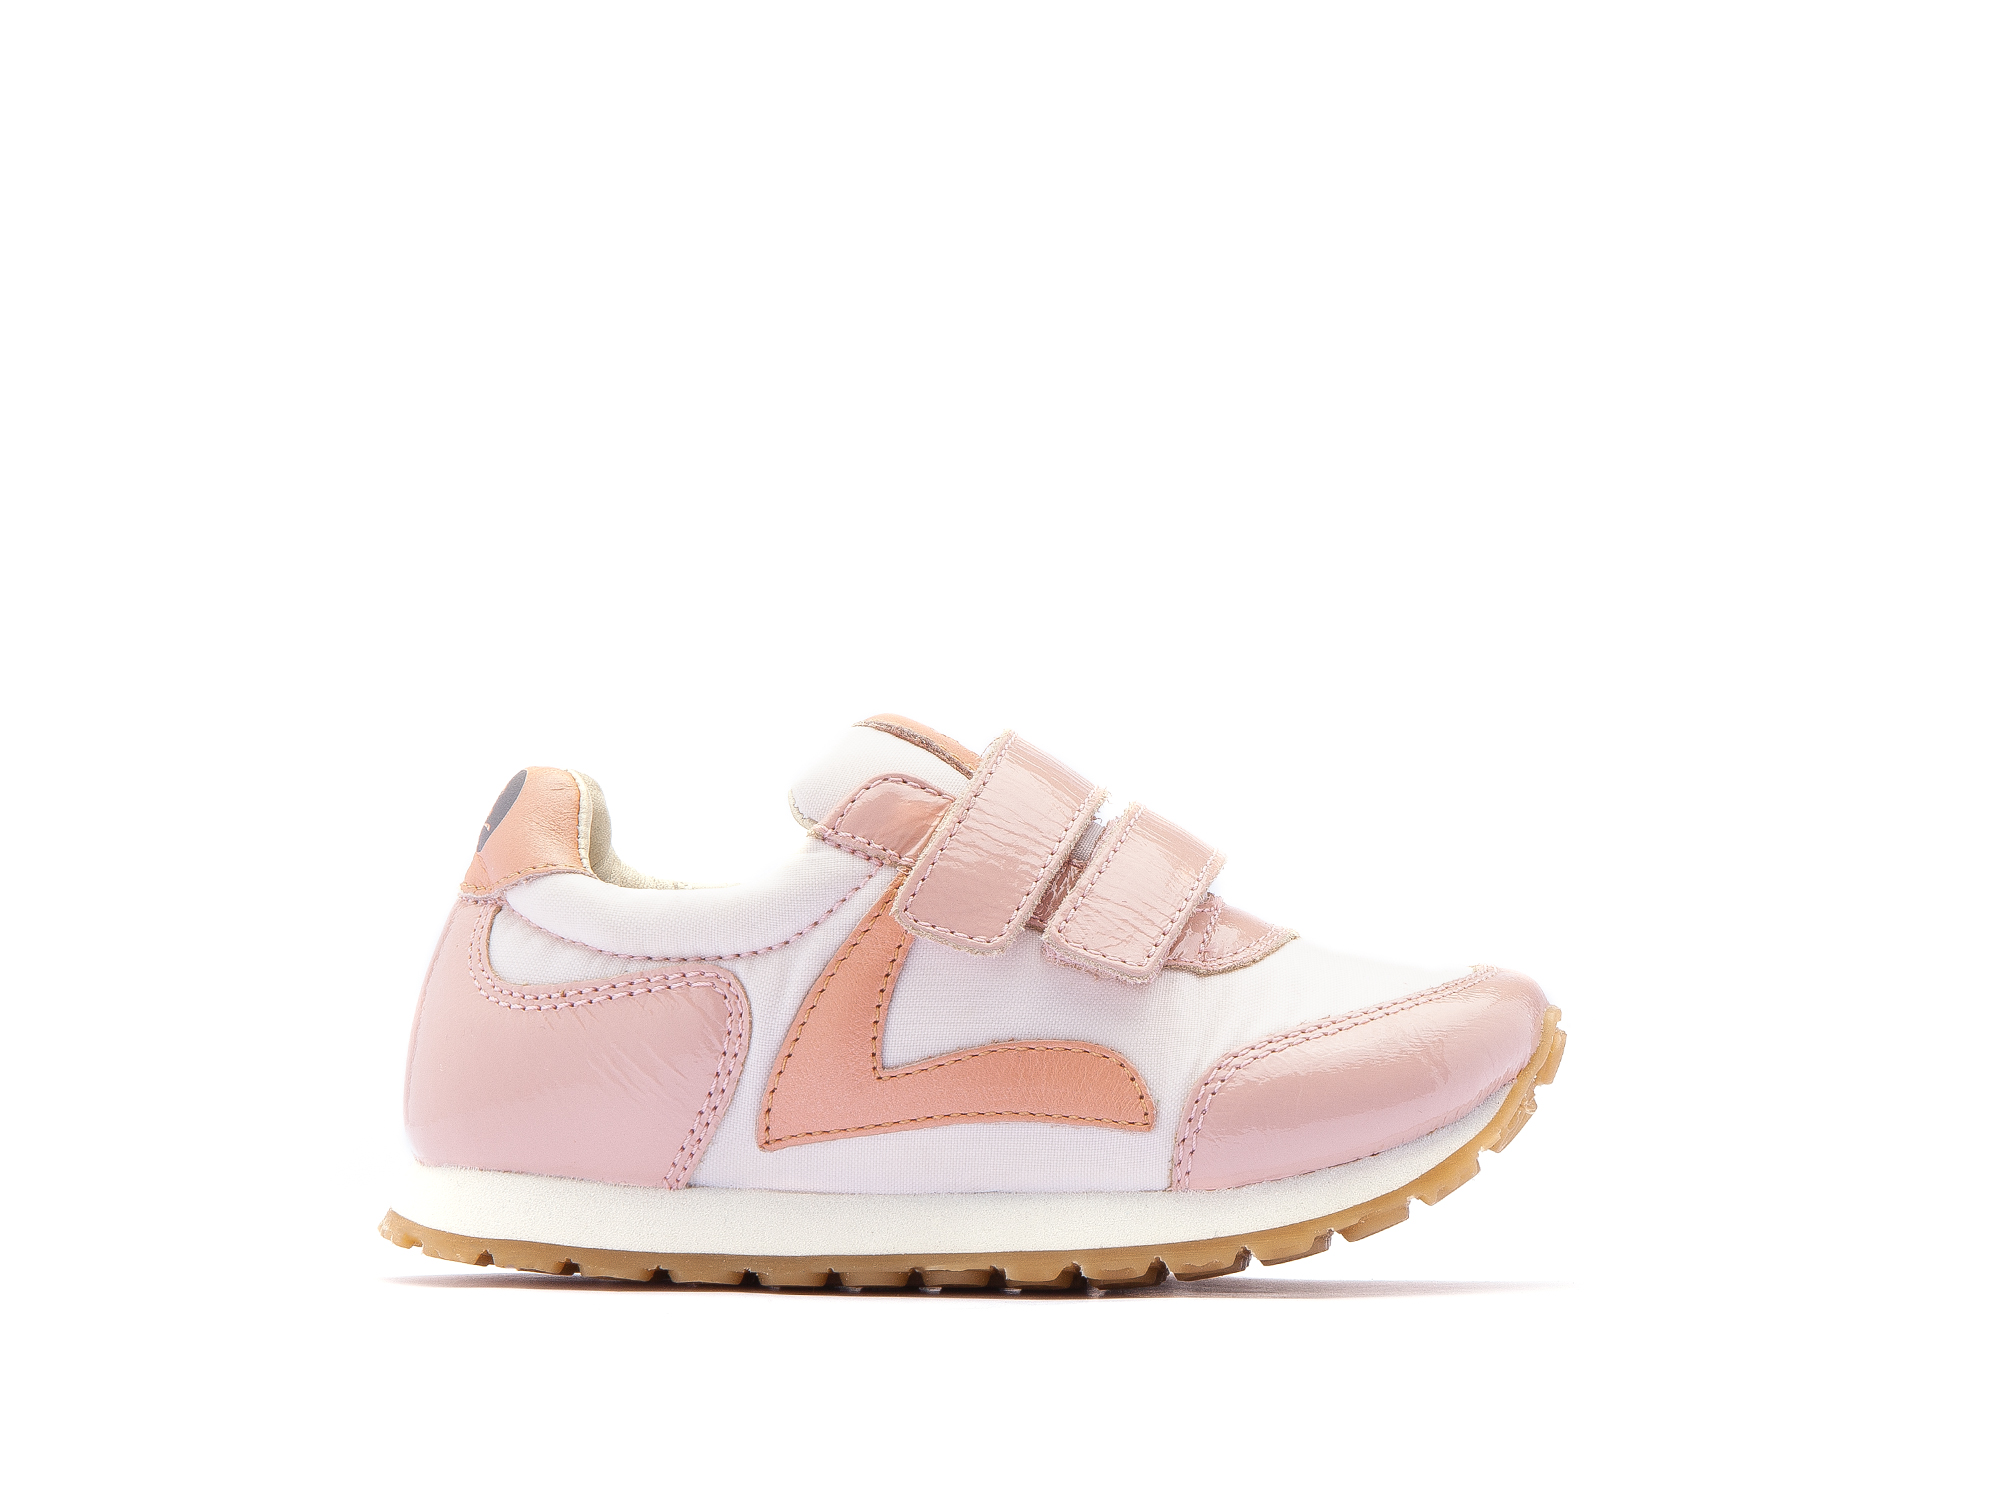 Tênis Little Jump Light Pink Nylon/ Patent Blush Toddler 2 à 4 anos - 1